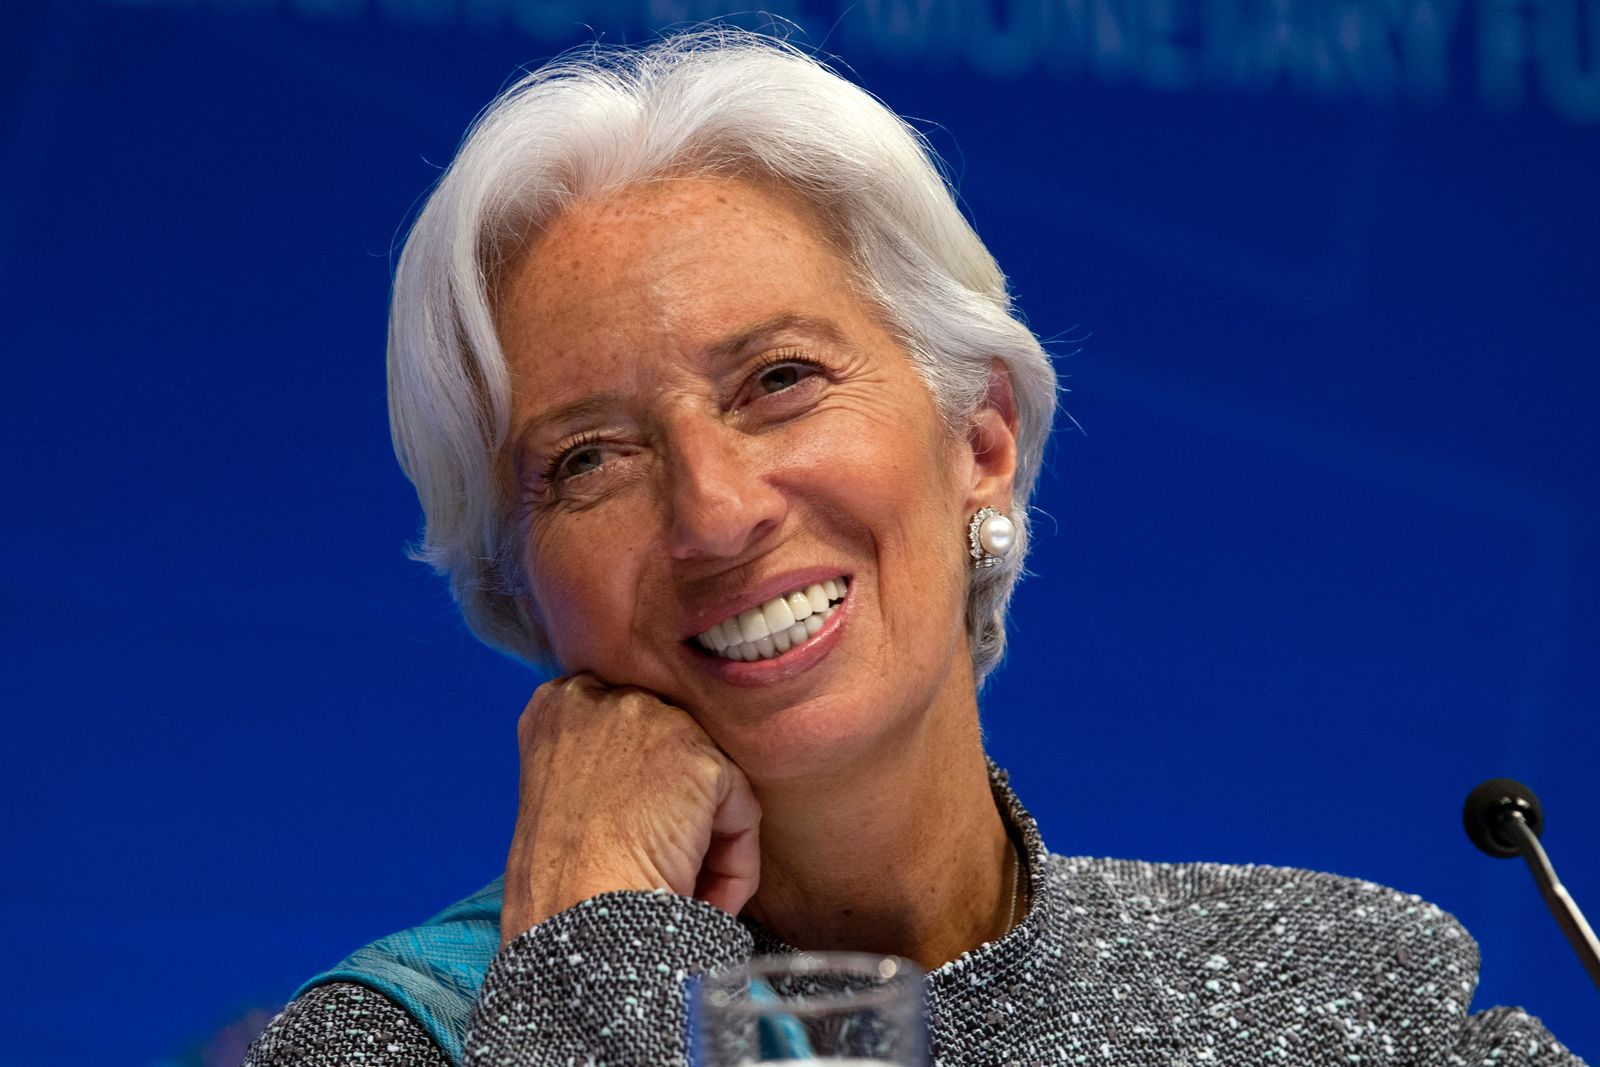 International Monetary Fund Managing Director Christine Lagarde speaks during a news conference after the International Monetary and Financial Committee conference at the World Bank/IMF Spring Meetings in Washington, Saturday, April 13, 2019. (AP Photo/Jose Luis Magana)